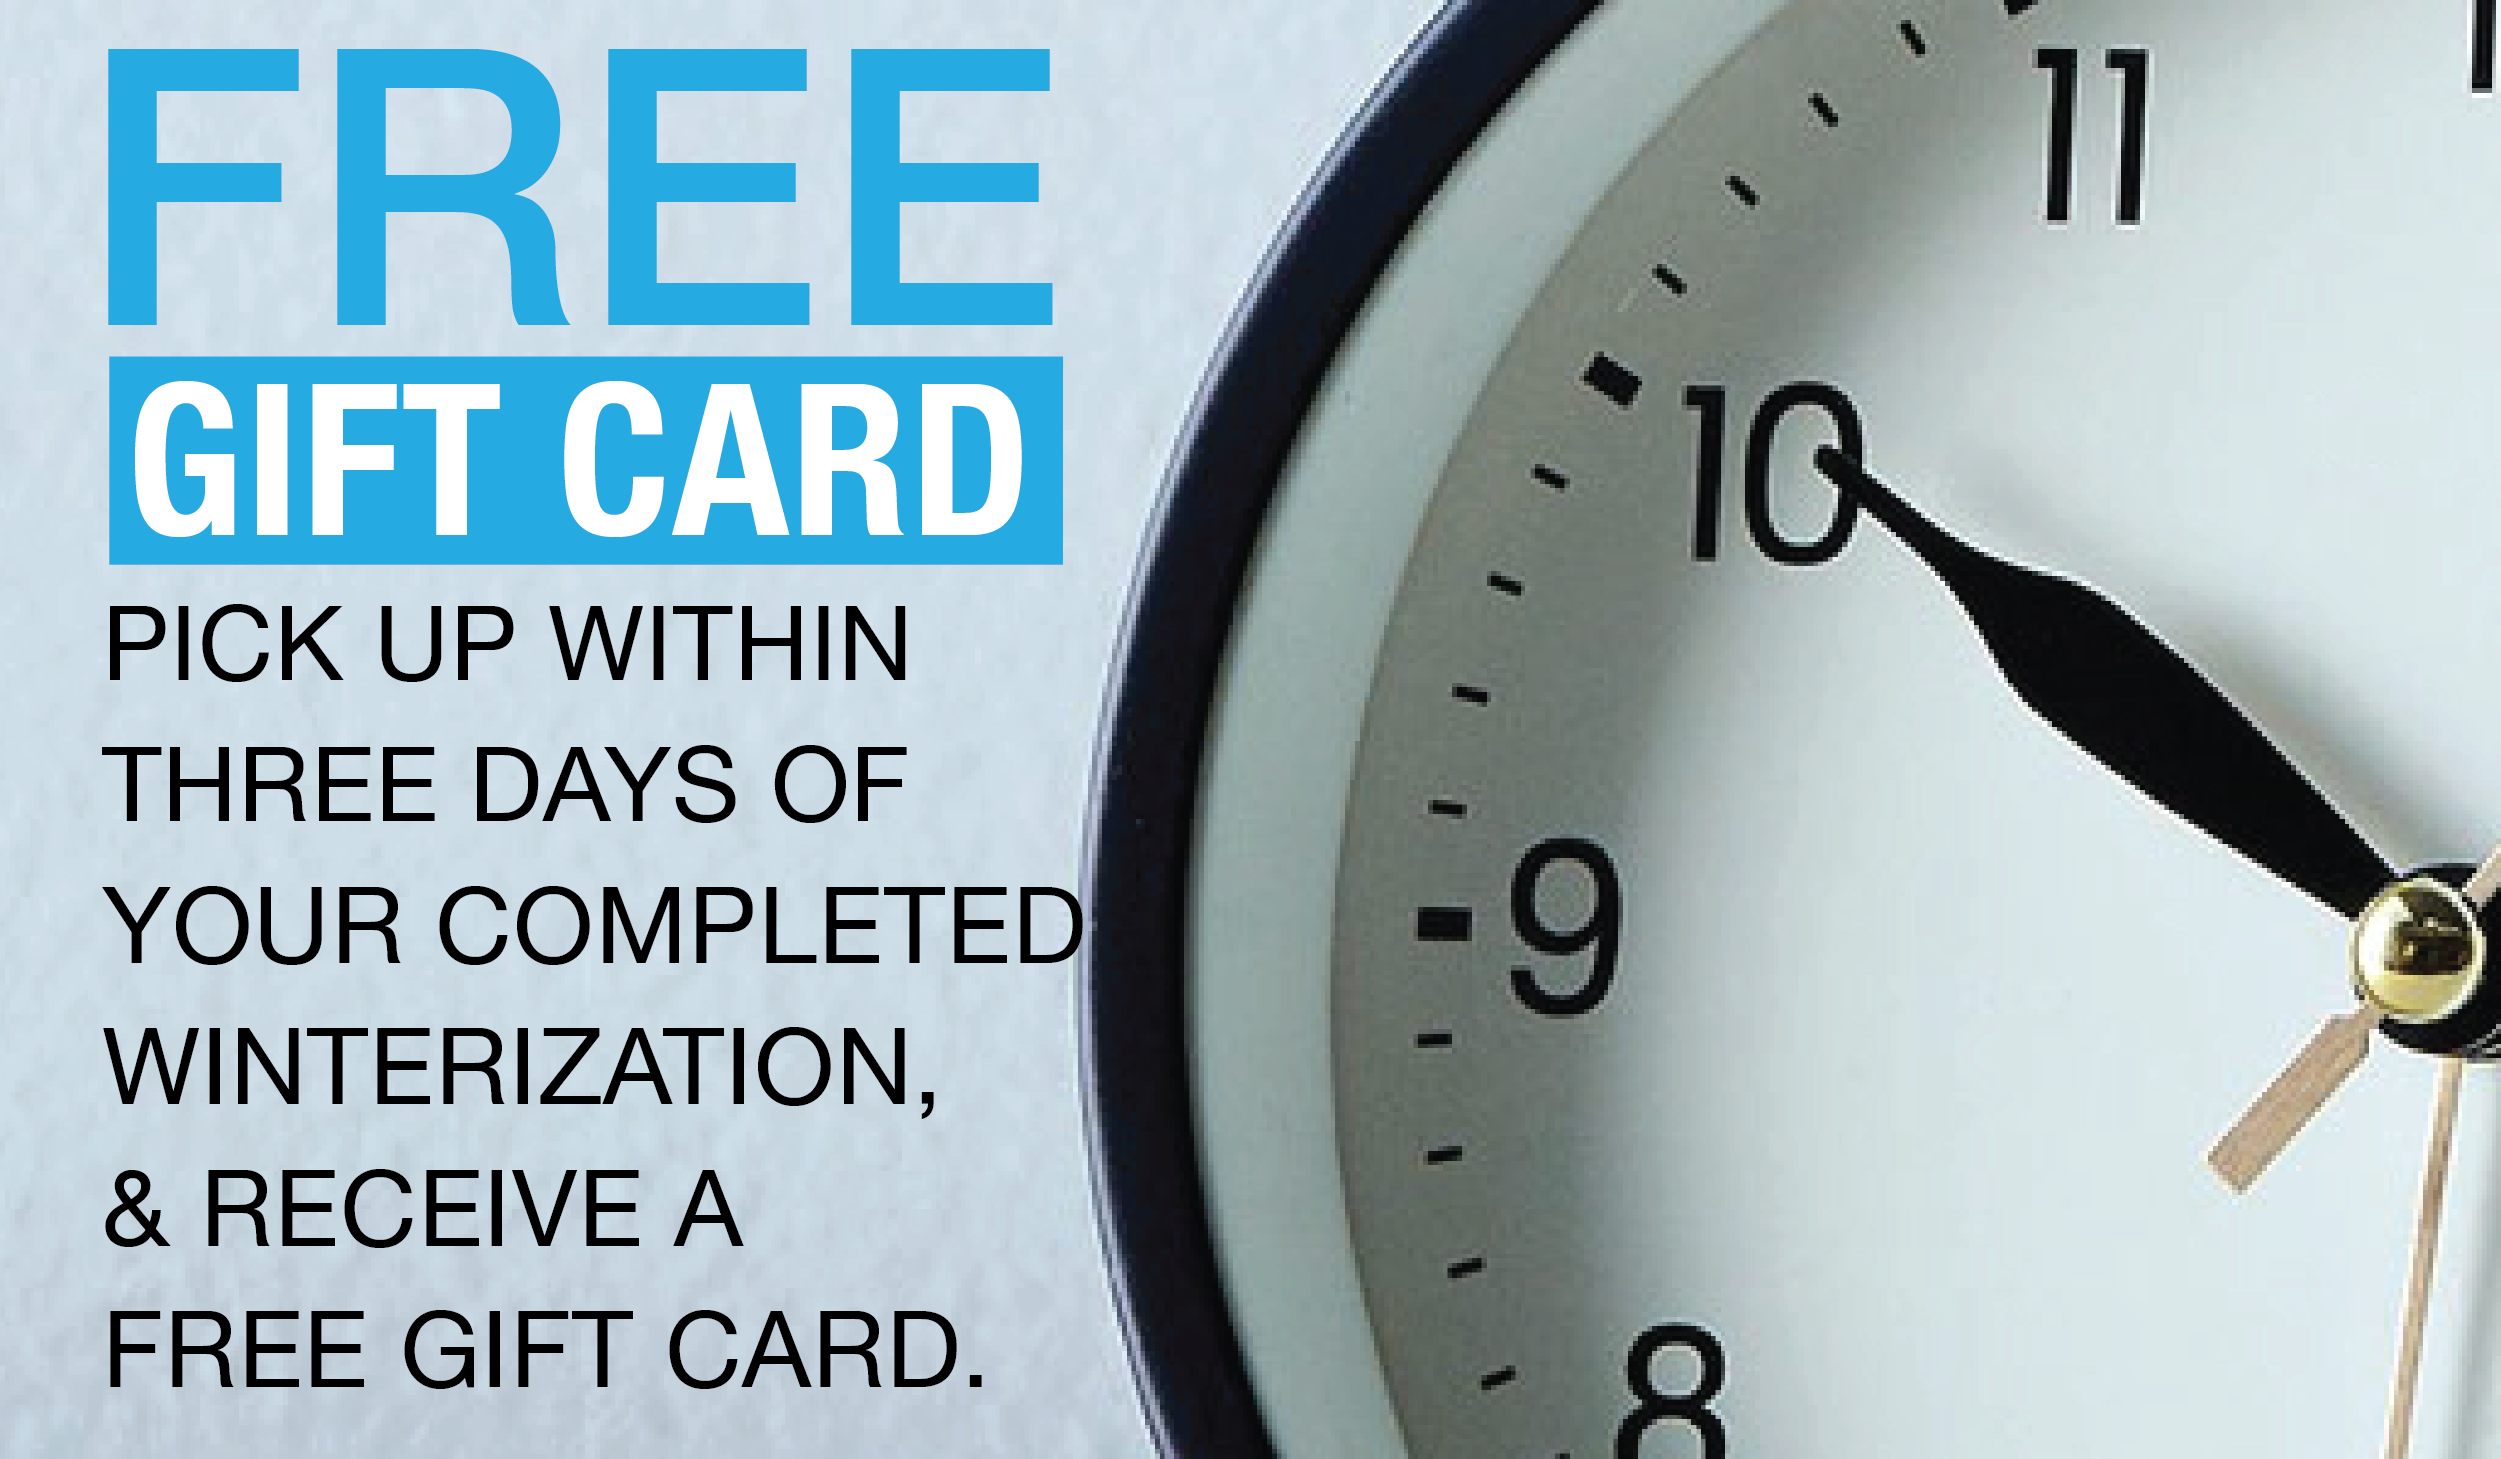 pick up within three days of your completed winterization and receive a free gift card